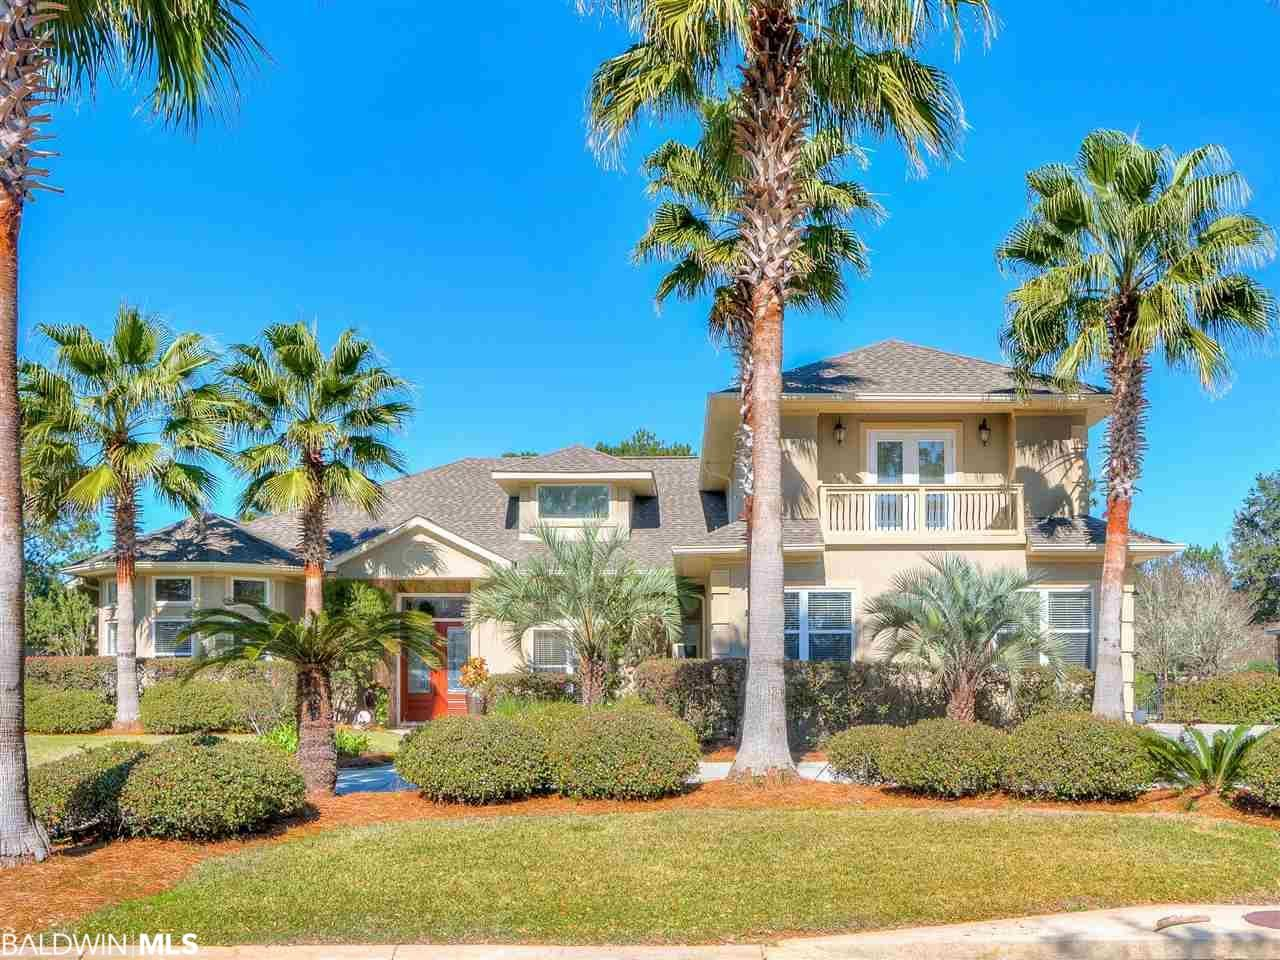 35+ Craft farms gulf shores homes for sale information